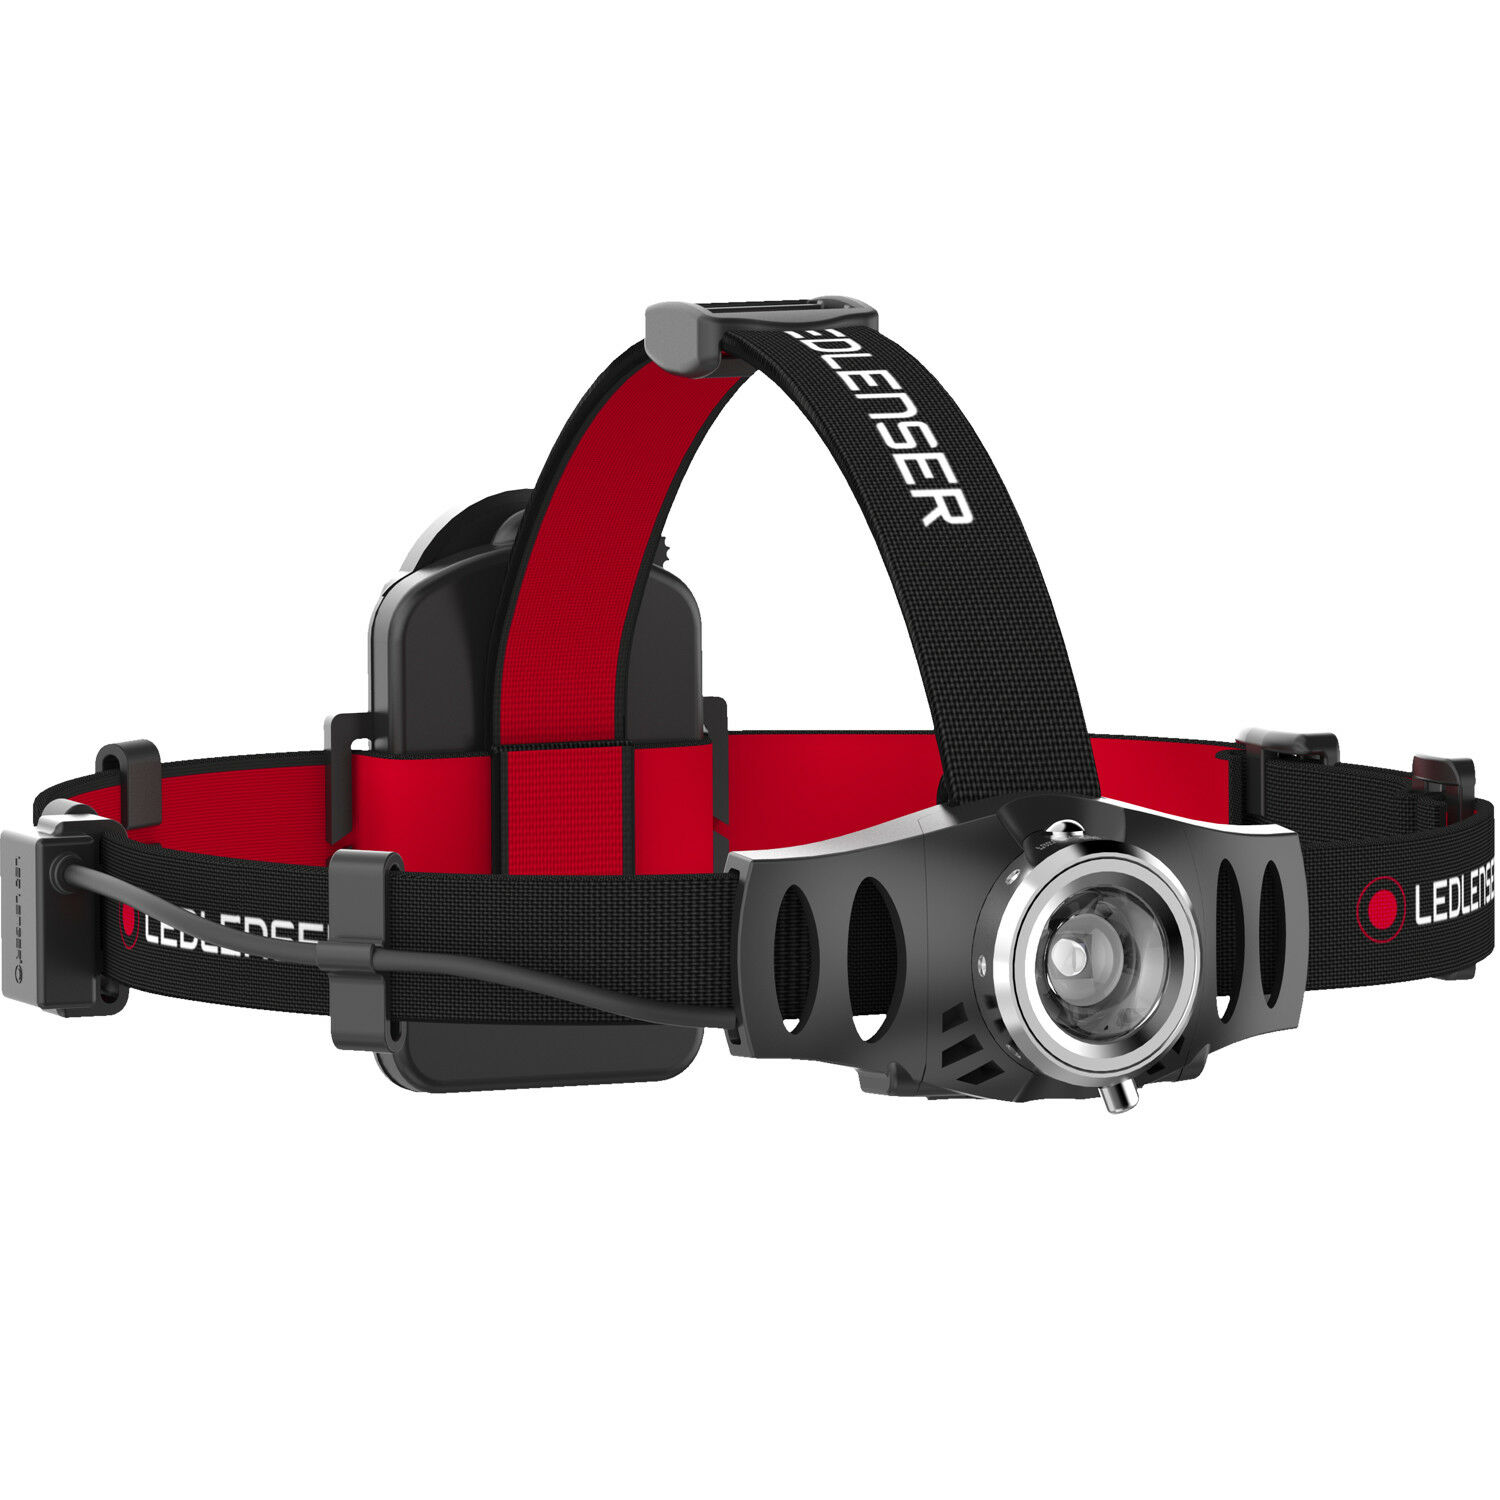 LED Lenser H6R  Rechargeable Head Torch 200 Lumens Lightweight Light  free shipping & exchanges.